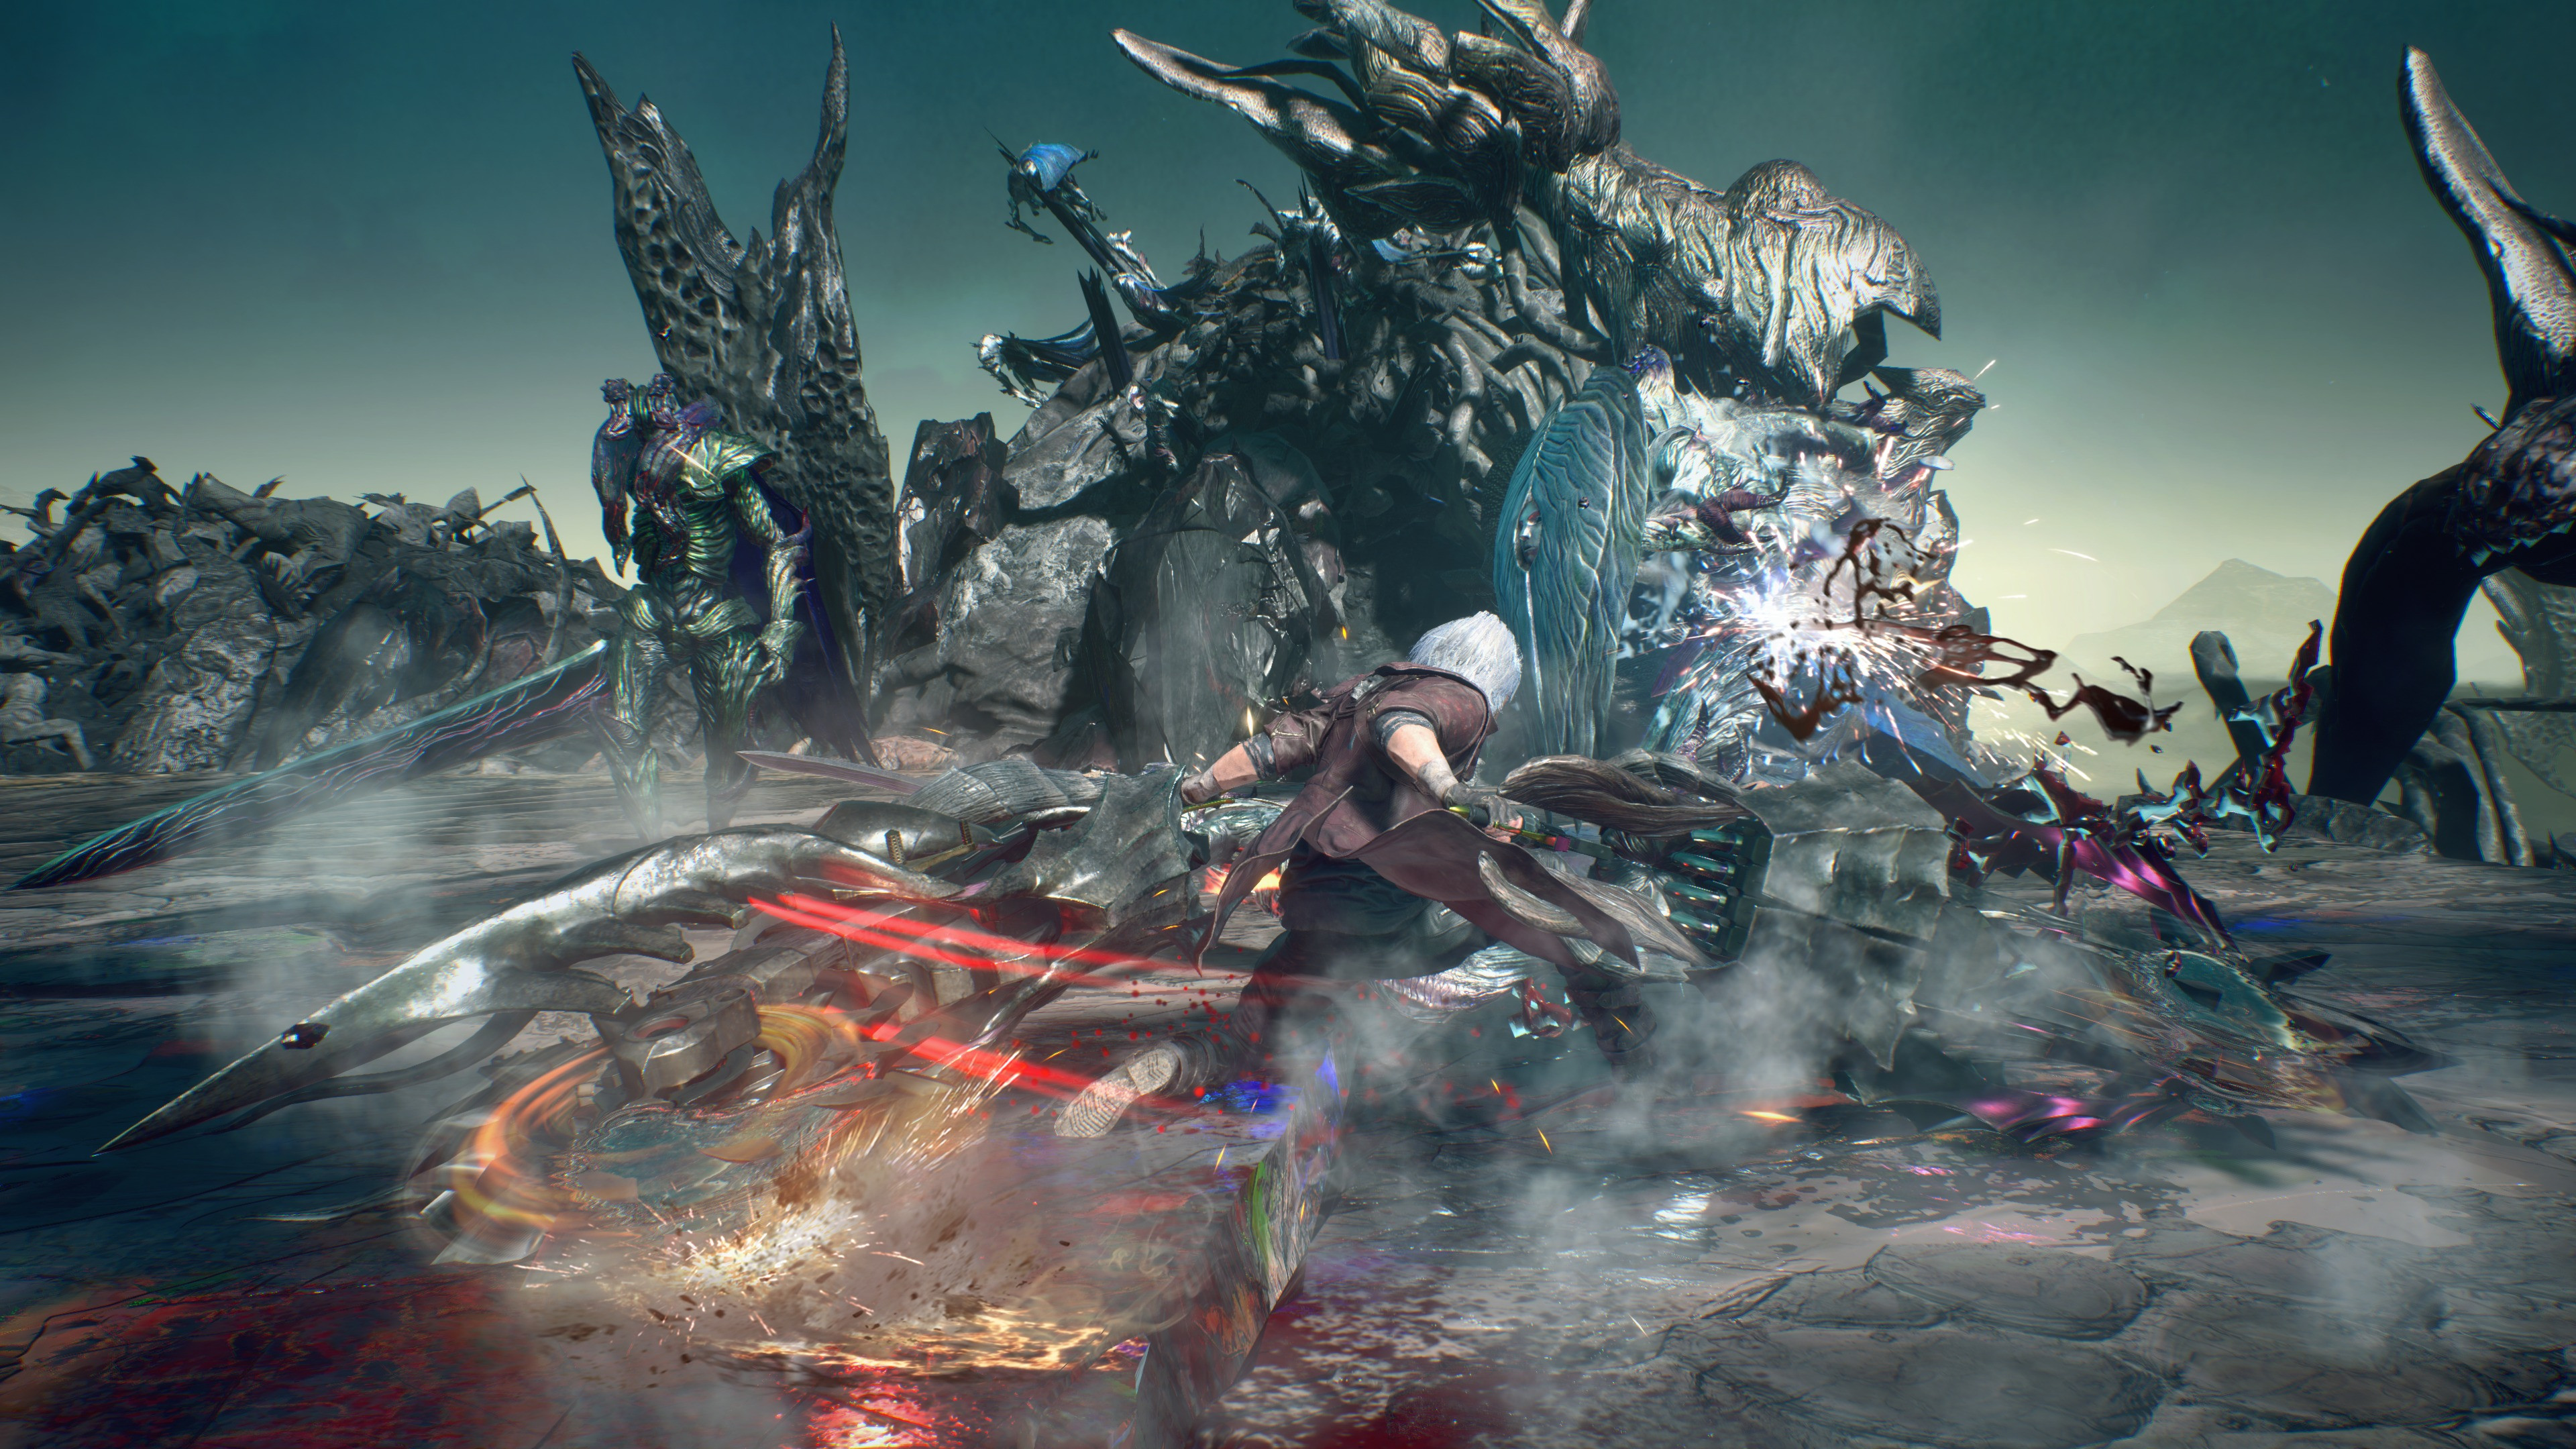 Click image for larger version  Name:	DMC5_Bloody_Palace_Screens_02.jpg Views:	1 Size:	2.02 MB ID:	3493700